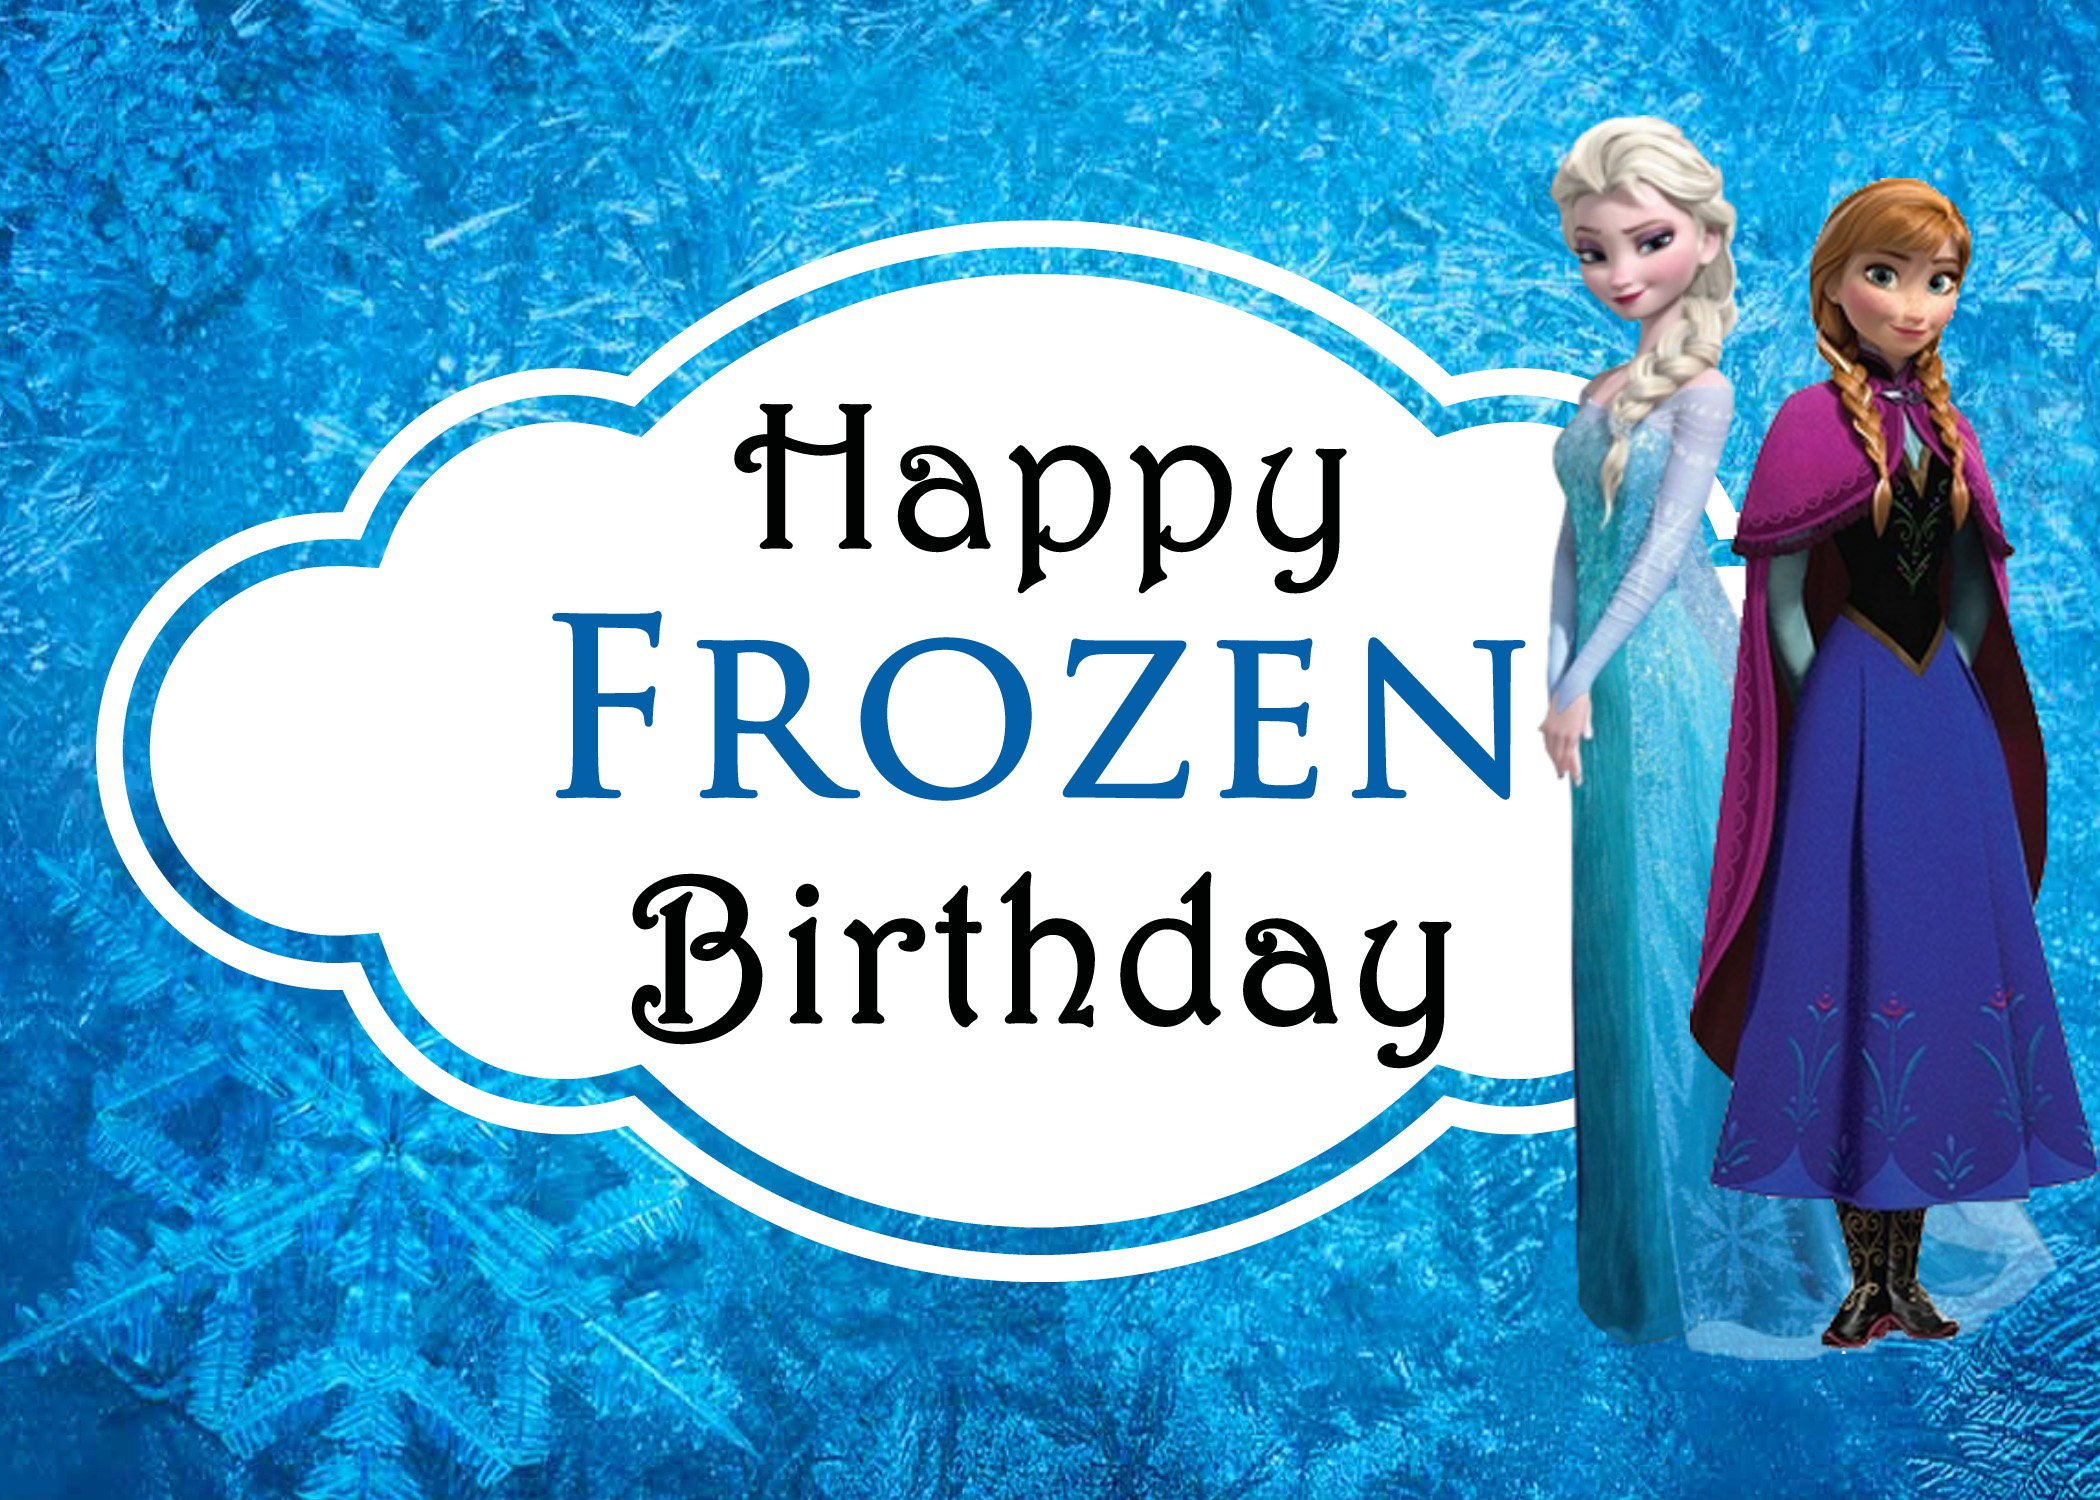 photograph relating to Frozen Birthday Card Printable referred to as Celebrating Sisters With Disneys Frozen + Absolutely free Printable